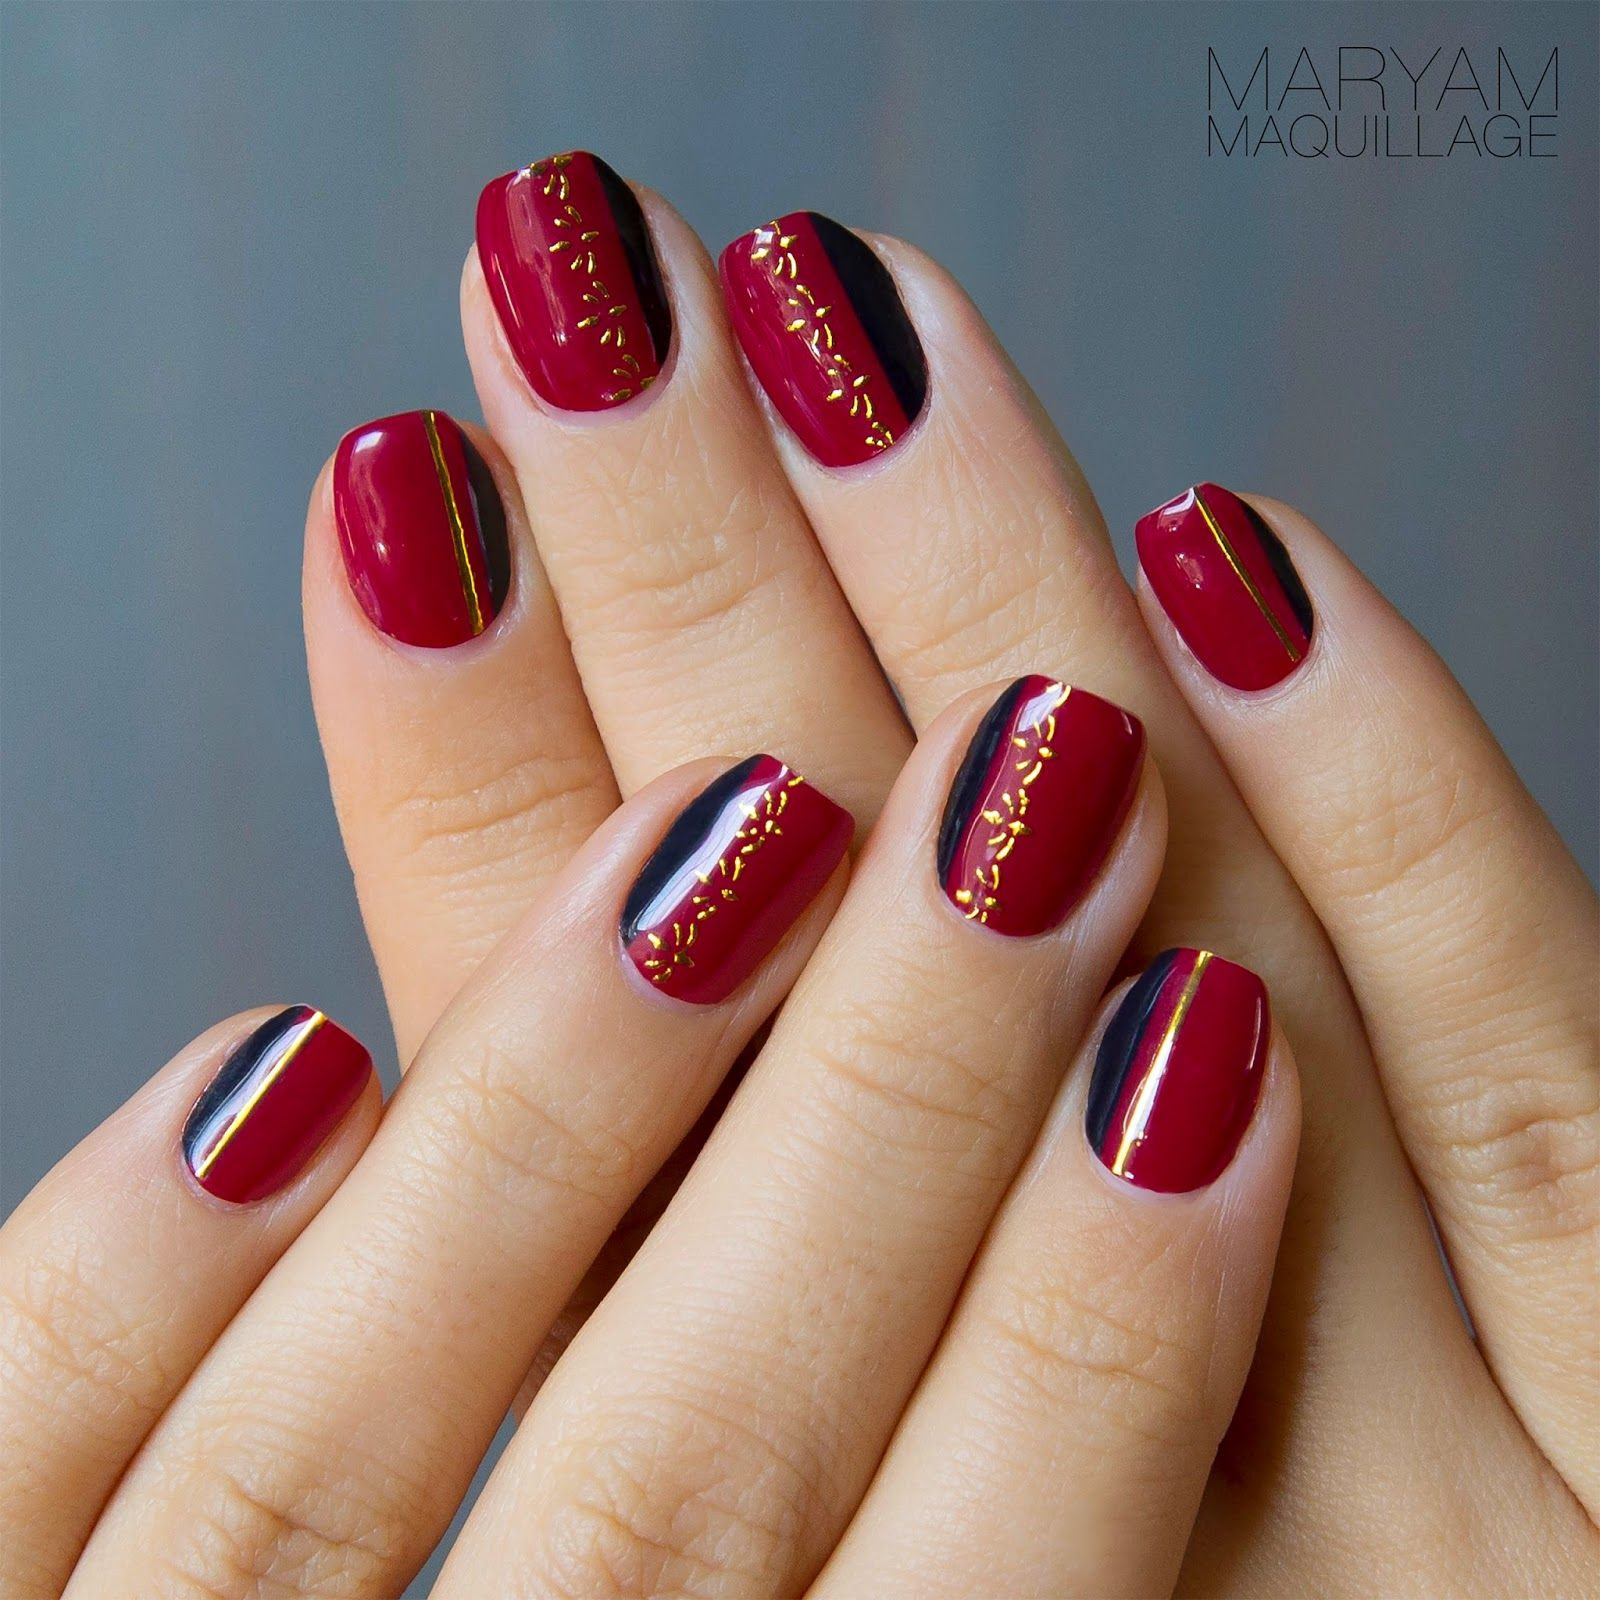 Gorgeous red nail art designs nails red pinterest red gorgeous red nail art designs prinsesfo Image collections